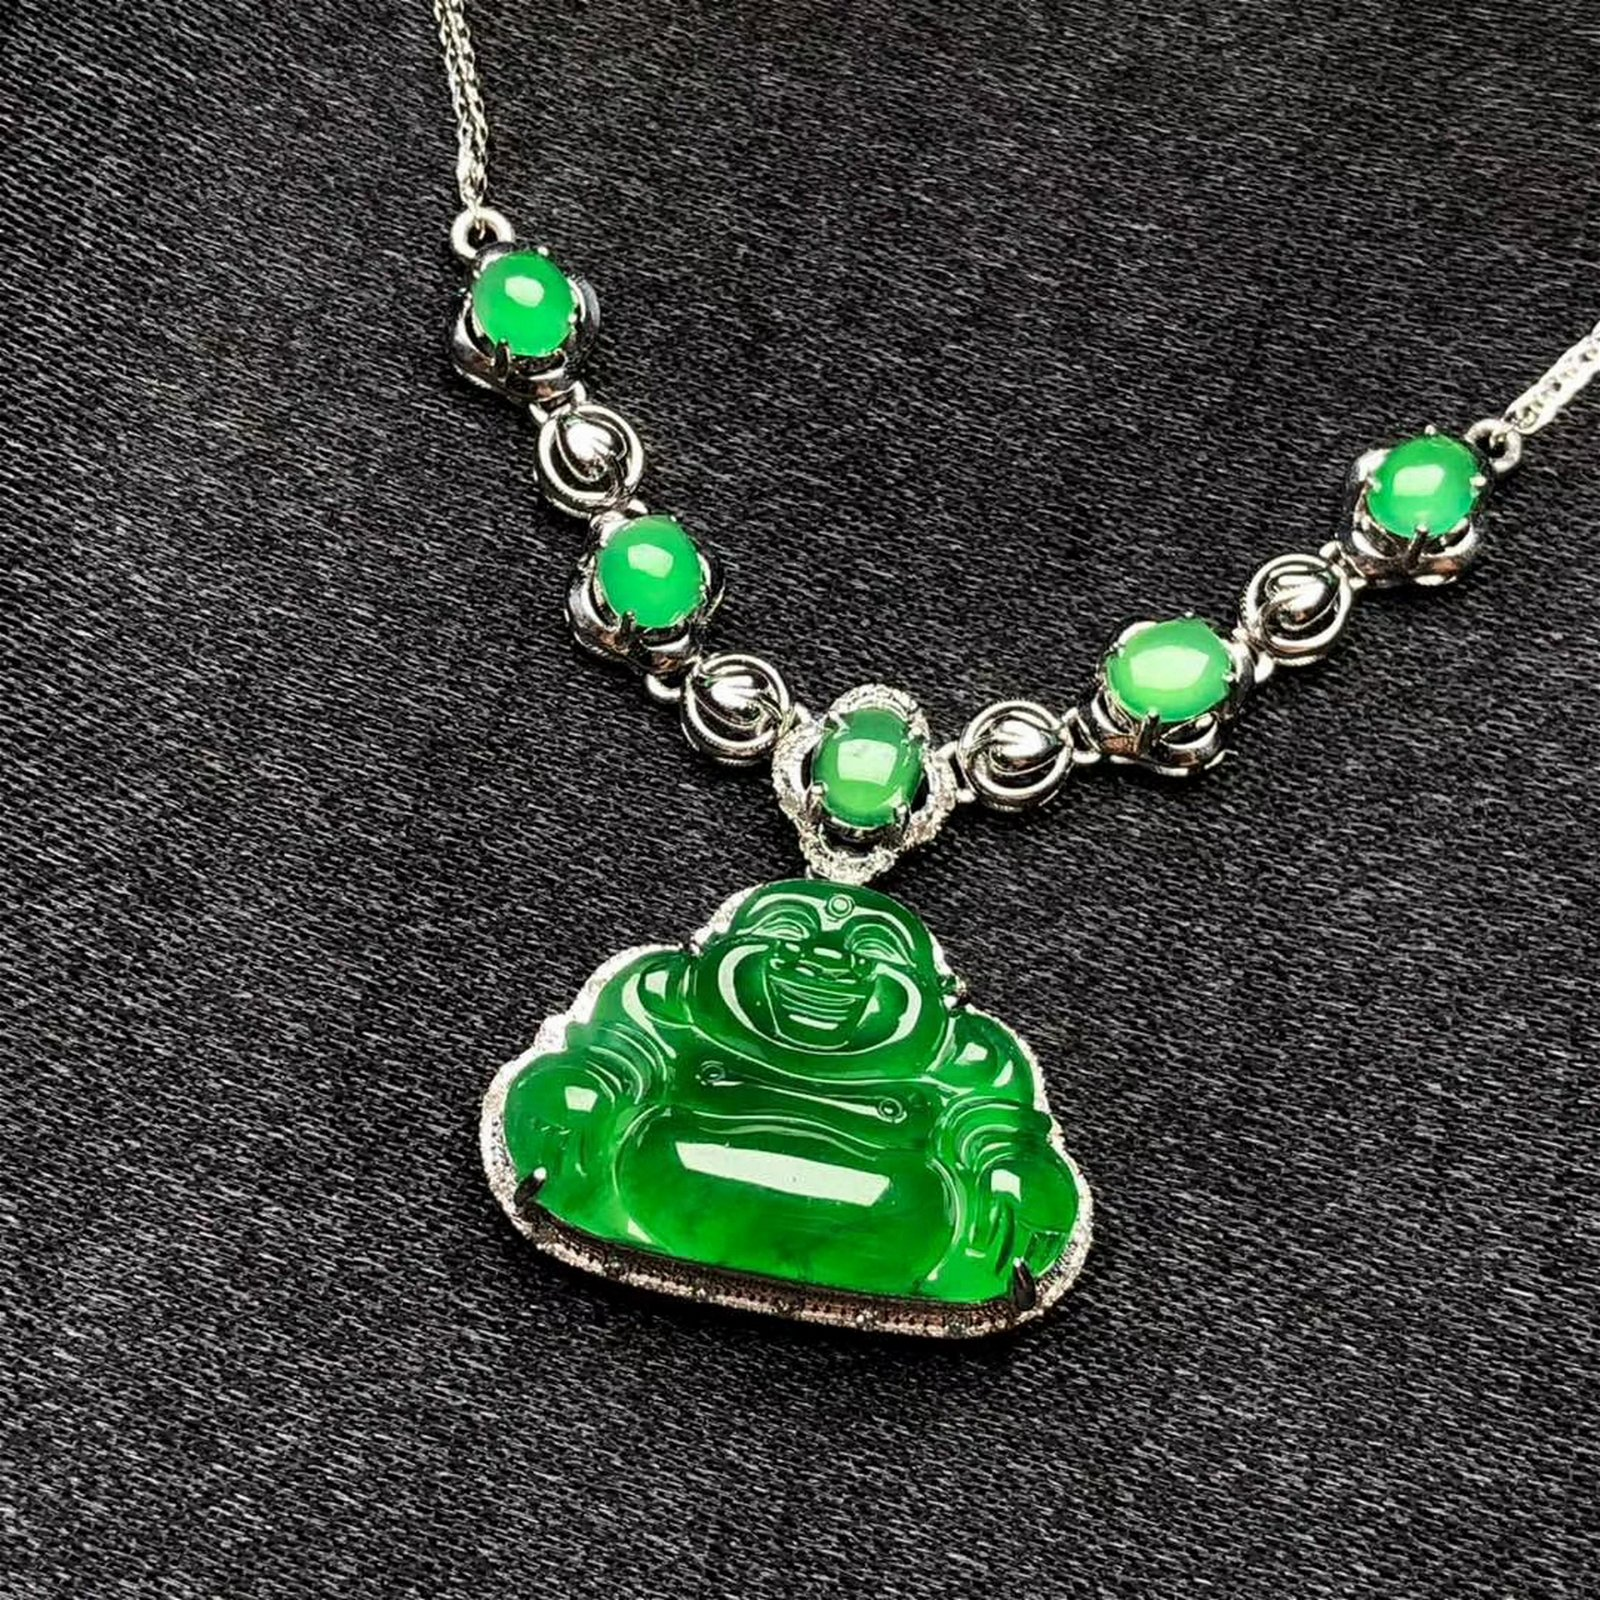 A Chinese 18K Gold Necklace with Carved Jadeite Buddha